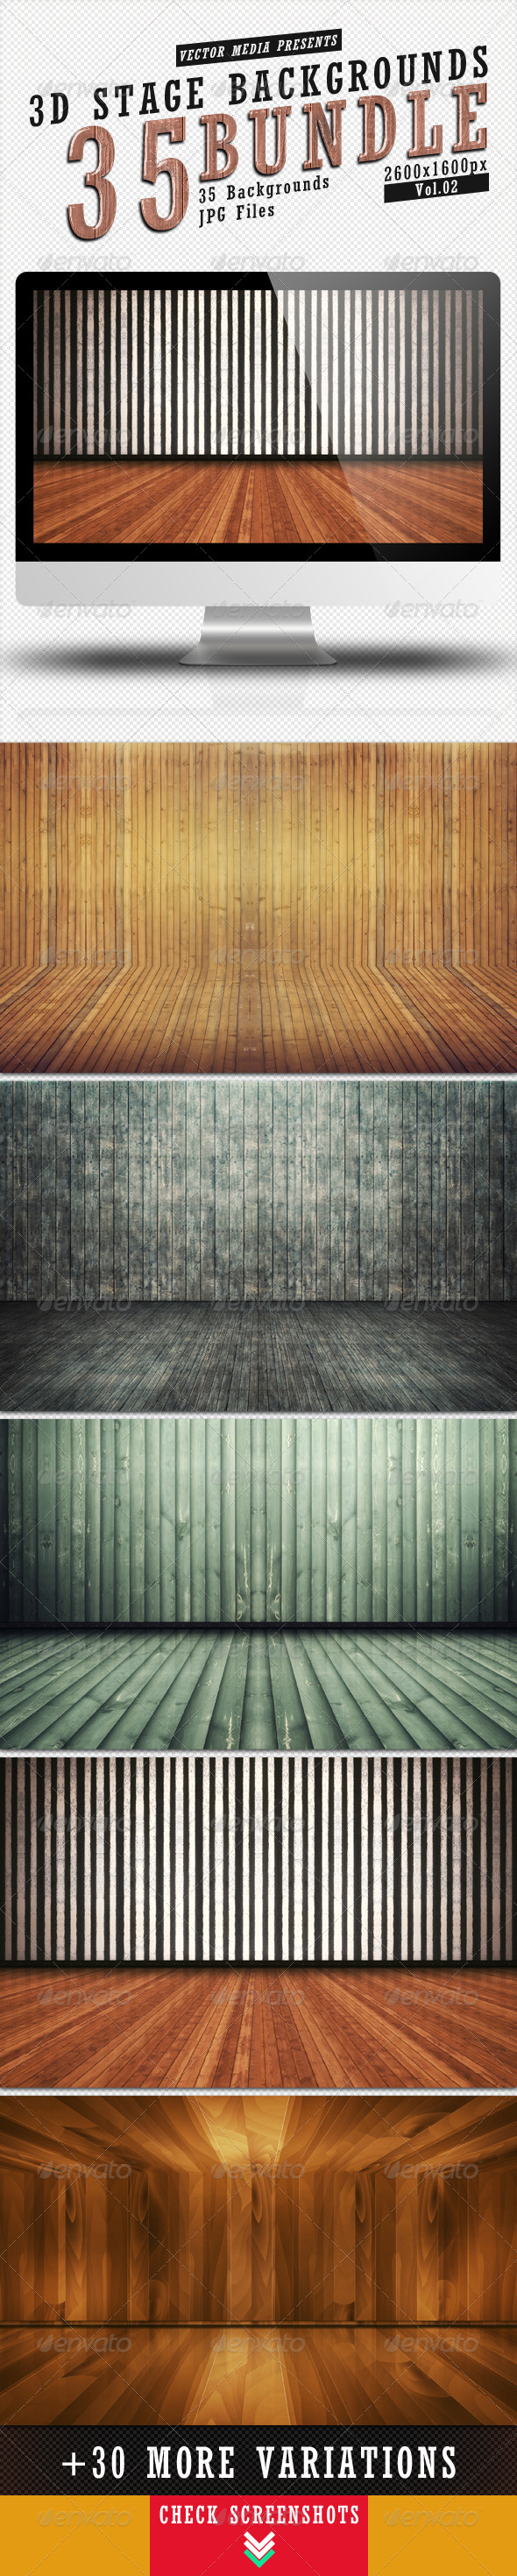 GraphicRiver 3D Stage Backgrounds Bundle Vol.2 4433537